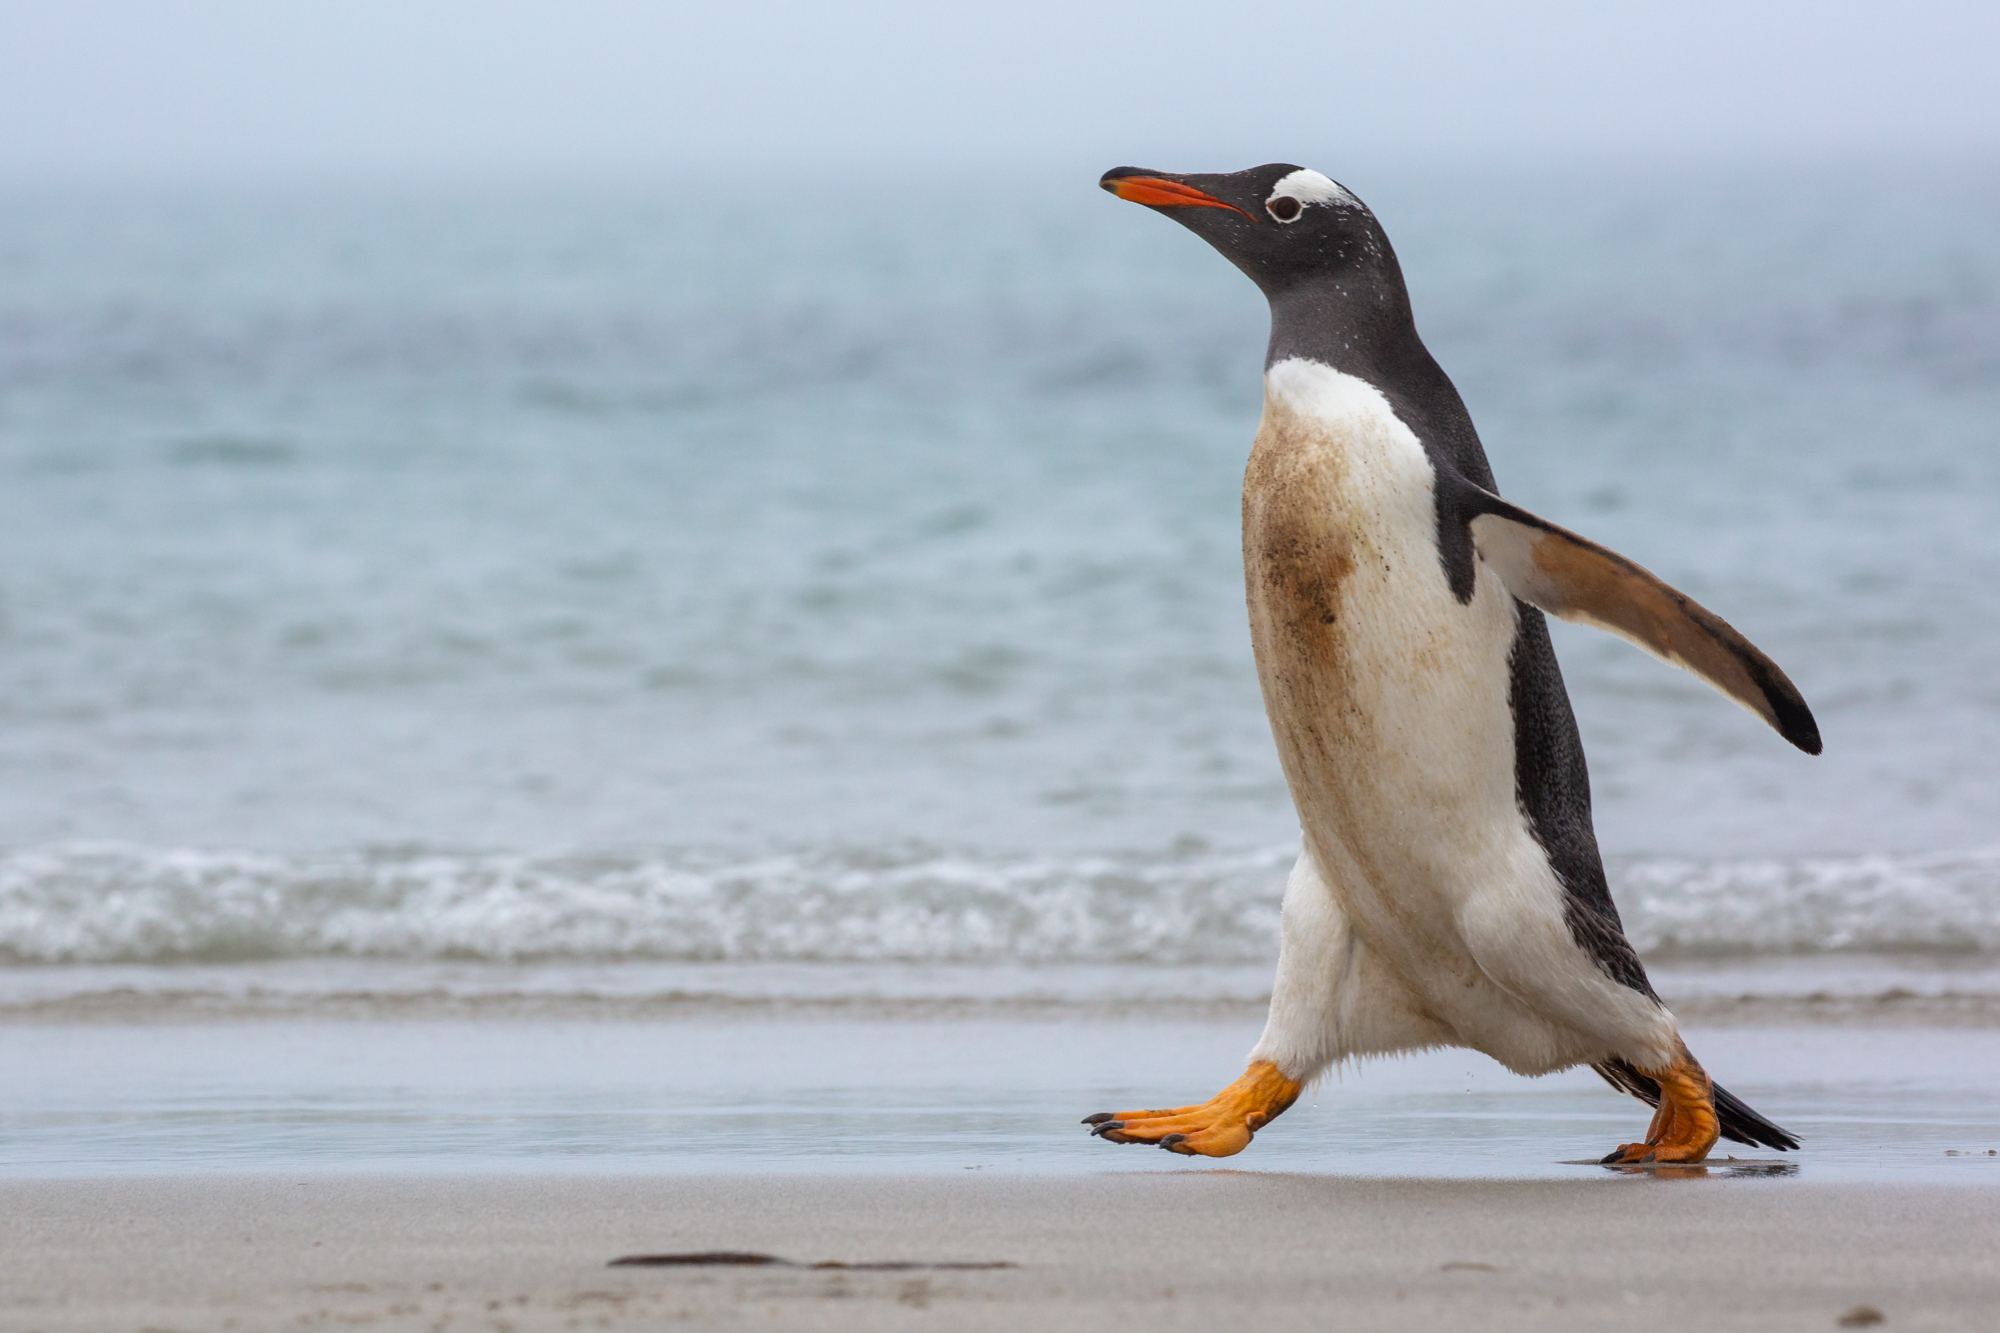 """""""Put your best foot forward"""" - A Gentoo penguin sprints along the shores of the Falkland Islands heading towards a nearby colony. With so much personality and character, I could never get tired of watching penguins. I would often take moments just to sit, watch, and chuckle as they went about their daily lives around me. As my first quarter returning to Stanford begins, I couldn't think of a more fitting image to display the feeling of being back and """"stepping forward"""" into the school year ahead.  The Falklands, which are the nearest developed islands to South Georgia, display a sharp contrast to one another. Rather than a land that is at least symbolically owned by nature itself, many of the natural areas of the Falklands are privately owned by British families that have lived and worked there for generations. With little opportunity for traditional work in the remote section of the southern ocean, the people vitally depend on nature-loving visitors. As a result, landowners have the incentive to ensure the protection of their owned slice of nature. The ecosystem along with the people of the Falklands mutually benefit from a protected natural ecosystem. It is a harmony between man and nature like none other on earth."""